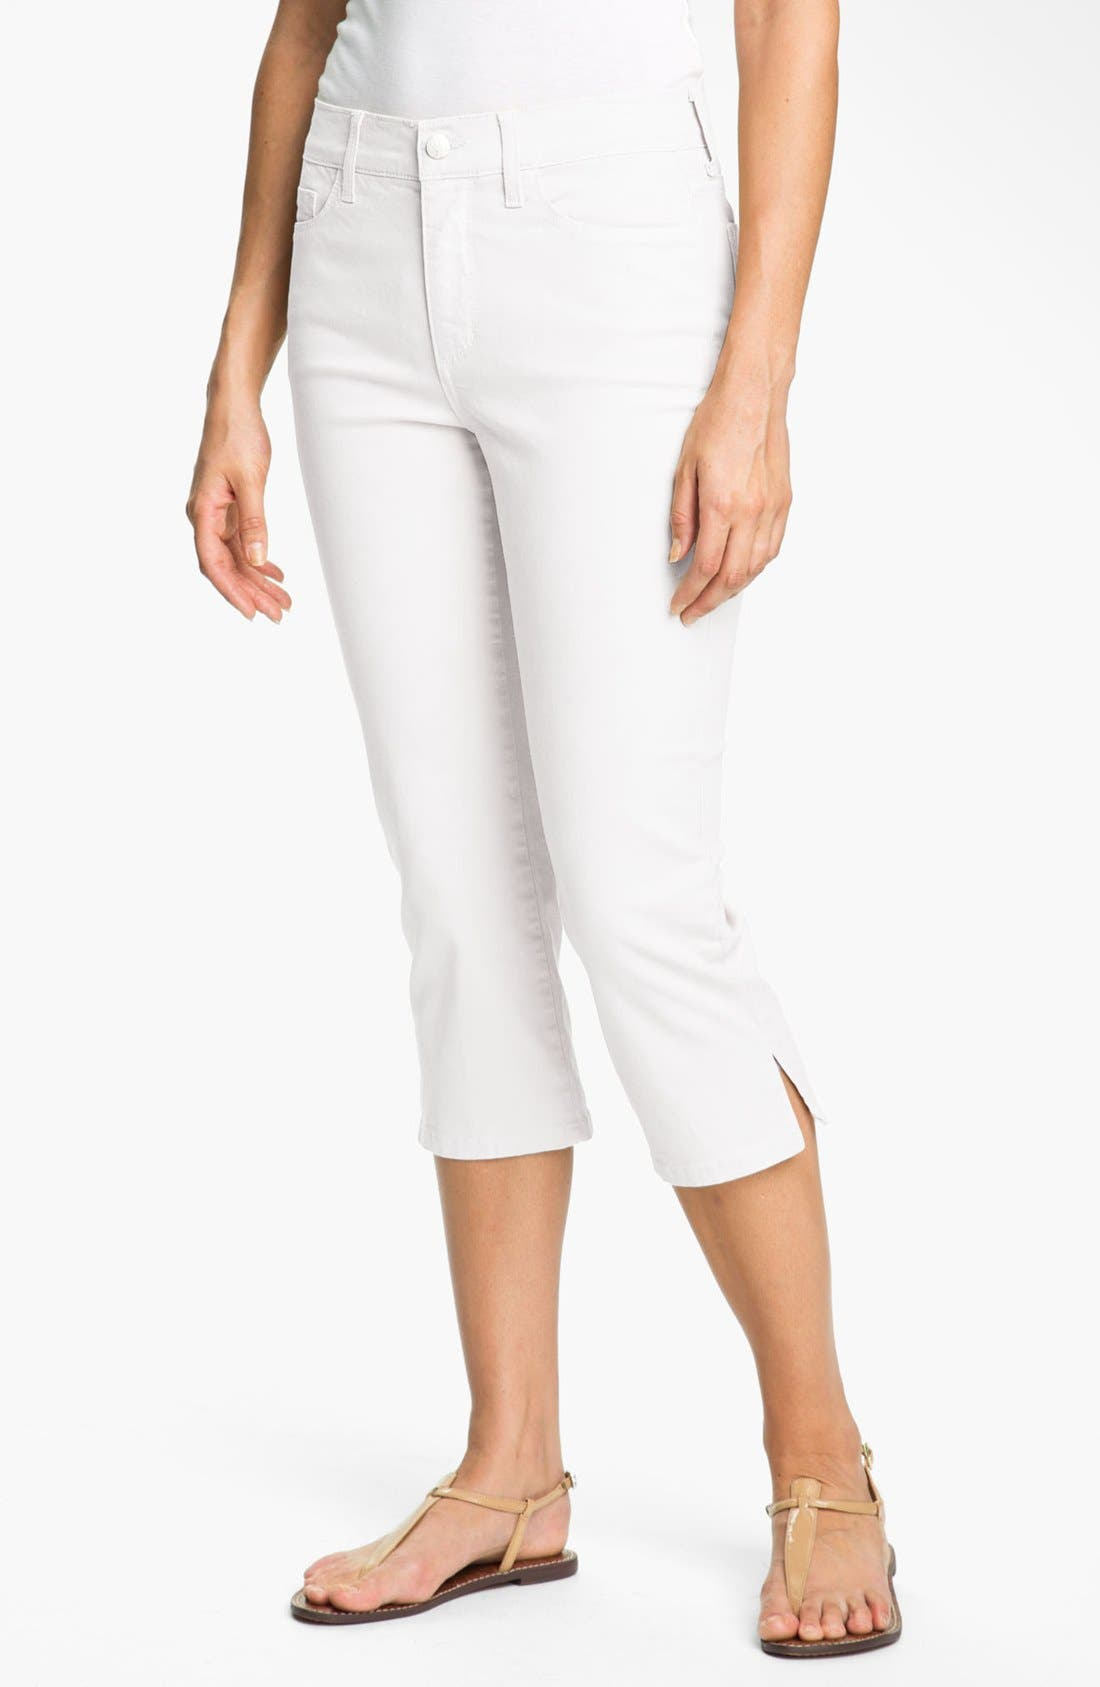 Alternate Image 1 Selected - NYDJ 'Nanette' Stretch Crop Jeans (Petite)